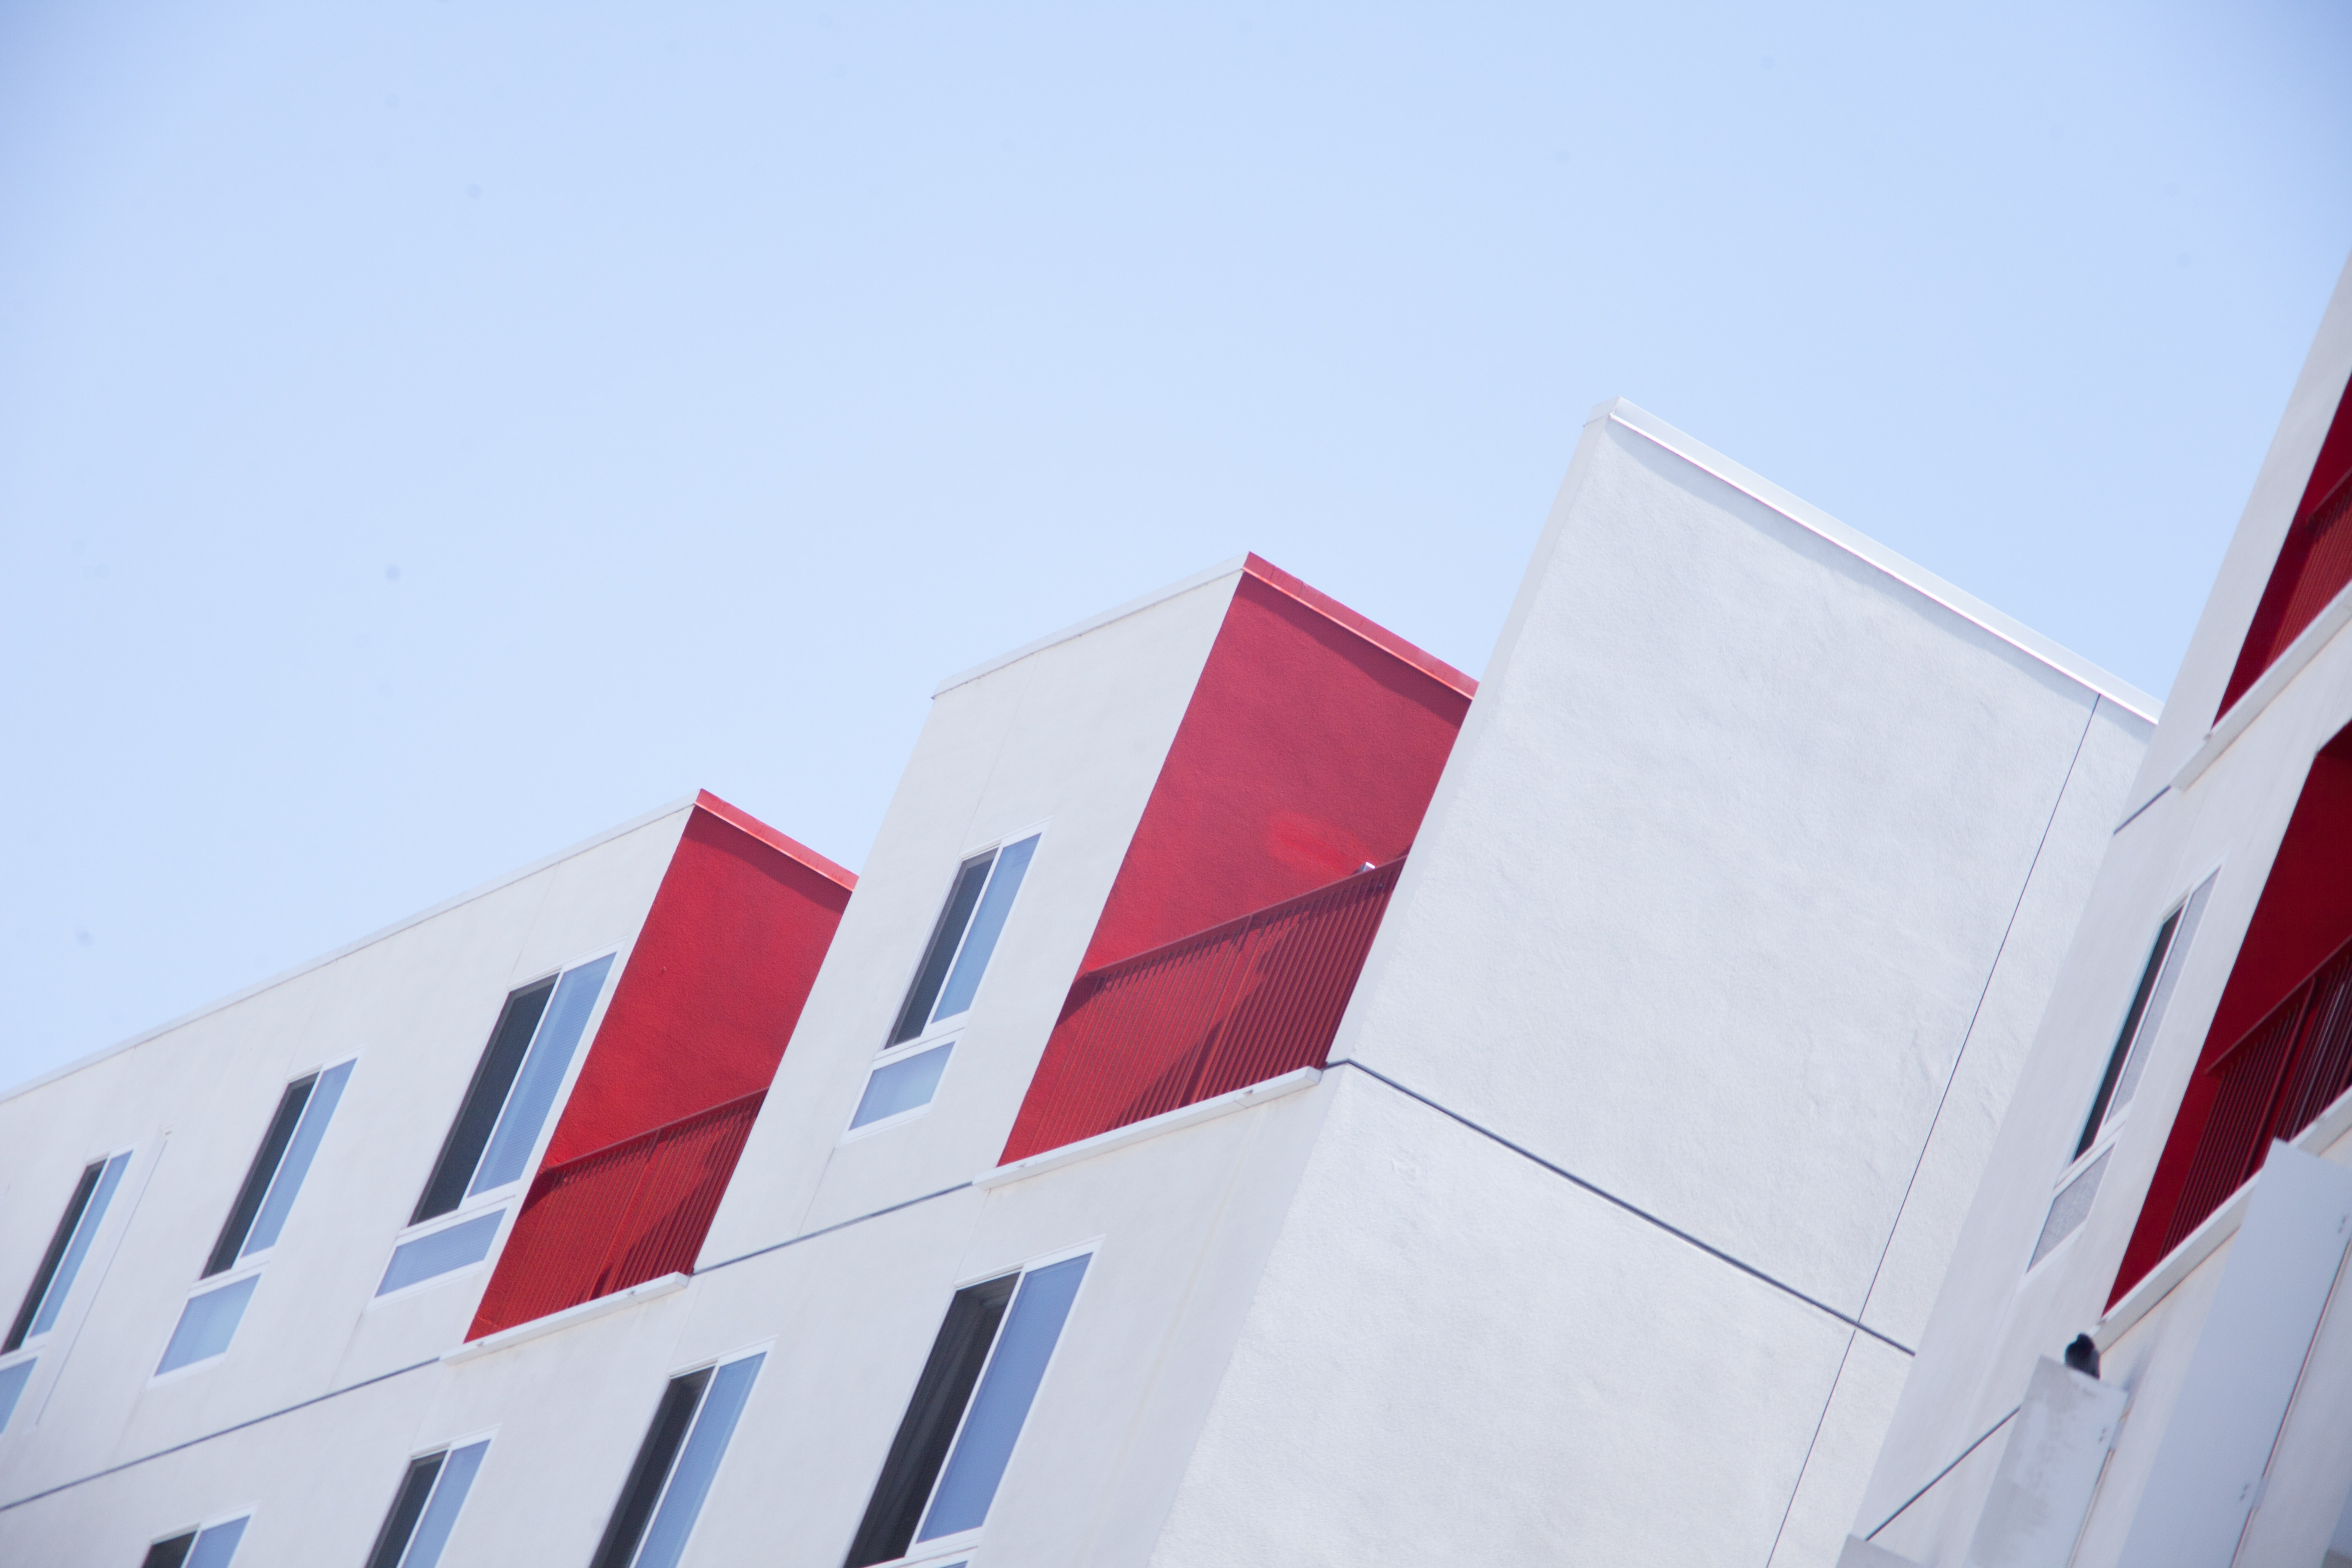 A white residential building facade with red balconies in Los Angeles